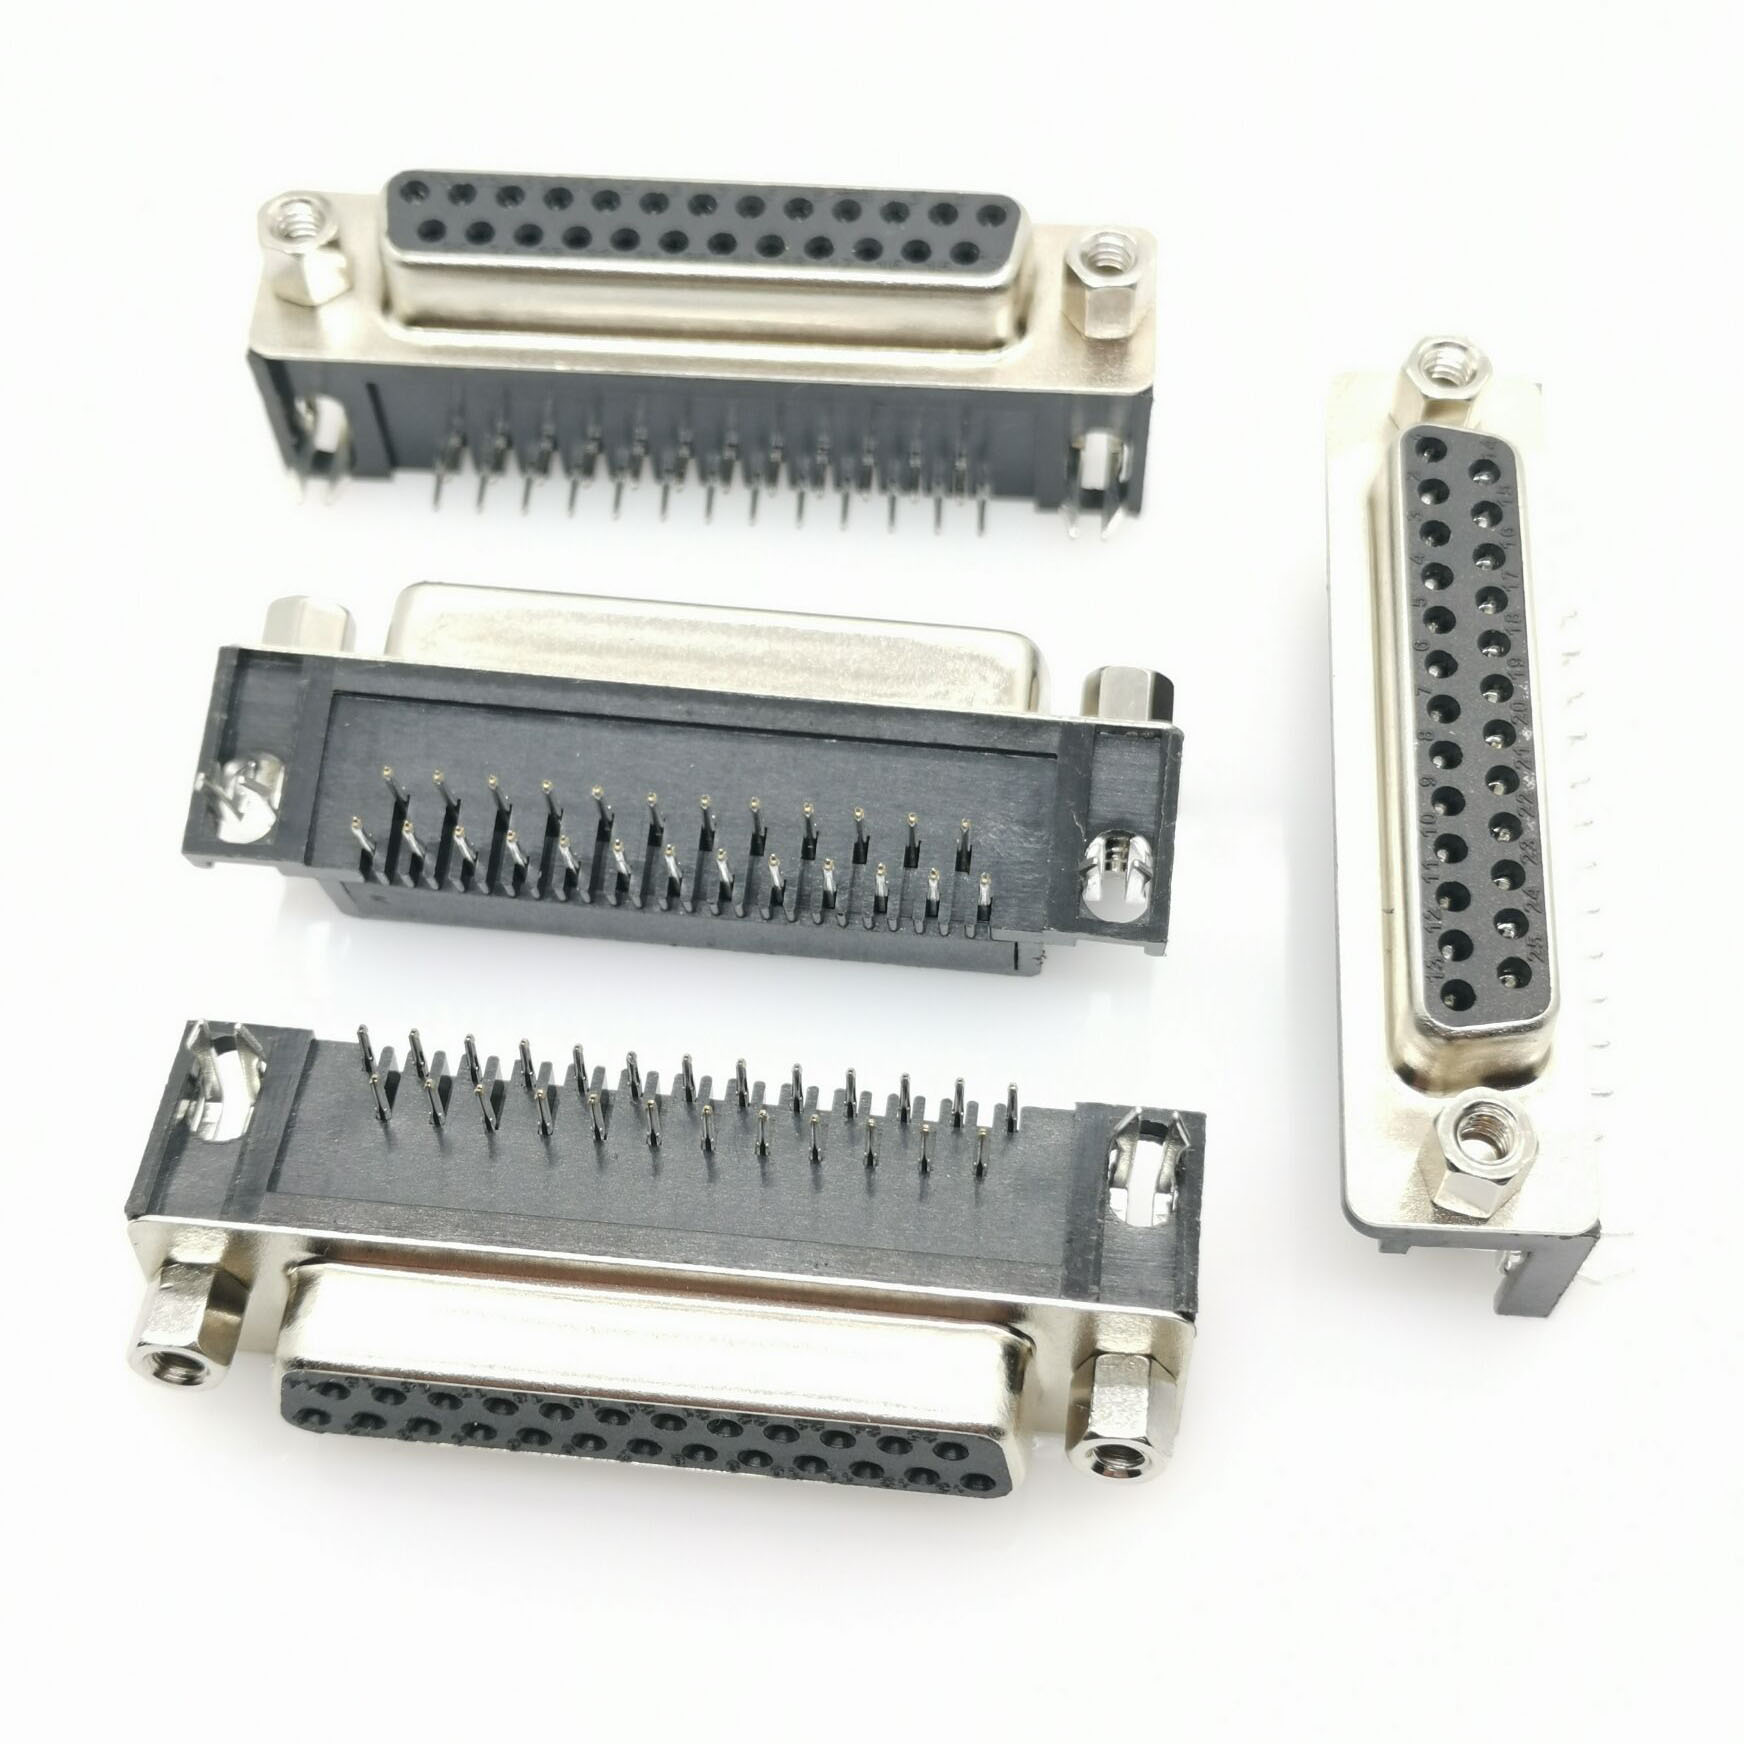 100Pcs <font><b>DB25</b></font> female DR25 male D-sub Right Angle <font><b>PCB</b></font> Mount Double Row Pins Electrical Connector Socket With Screw Nuts image